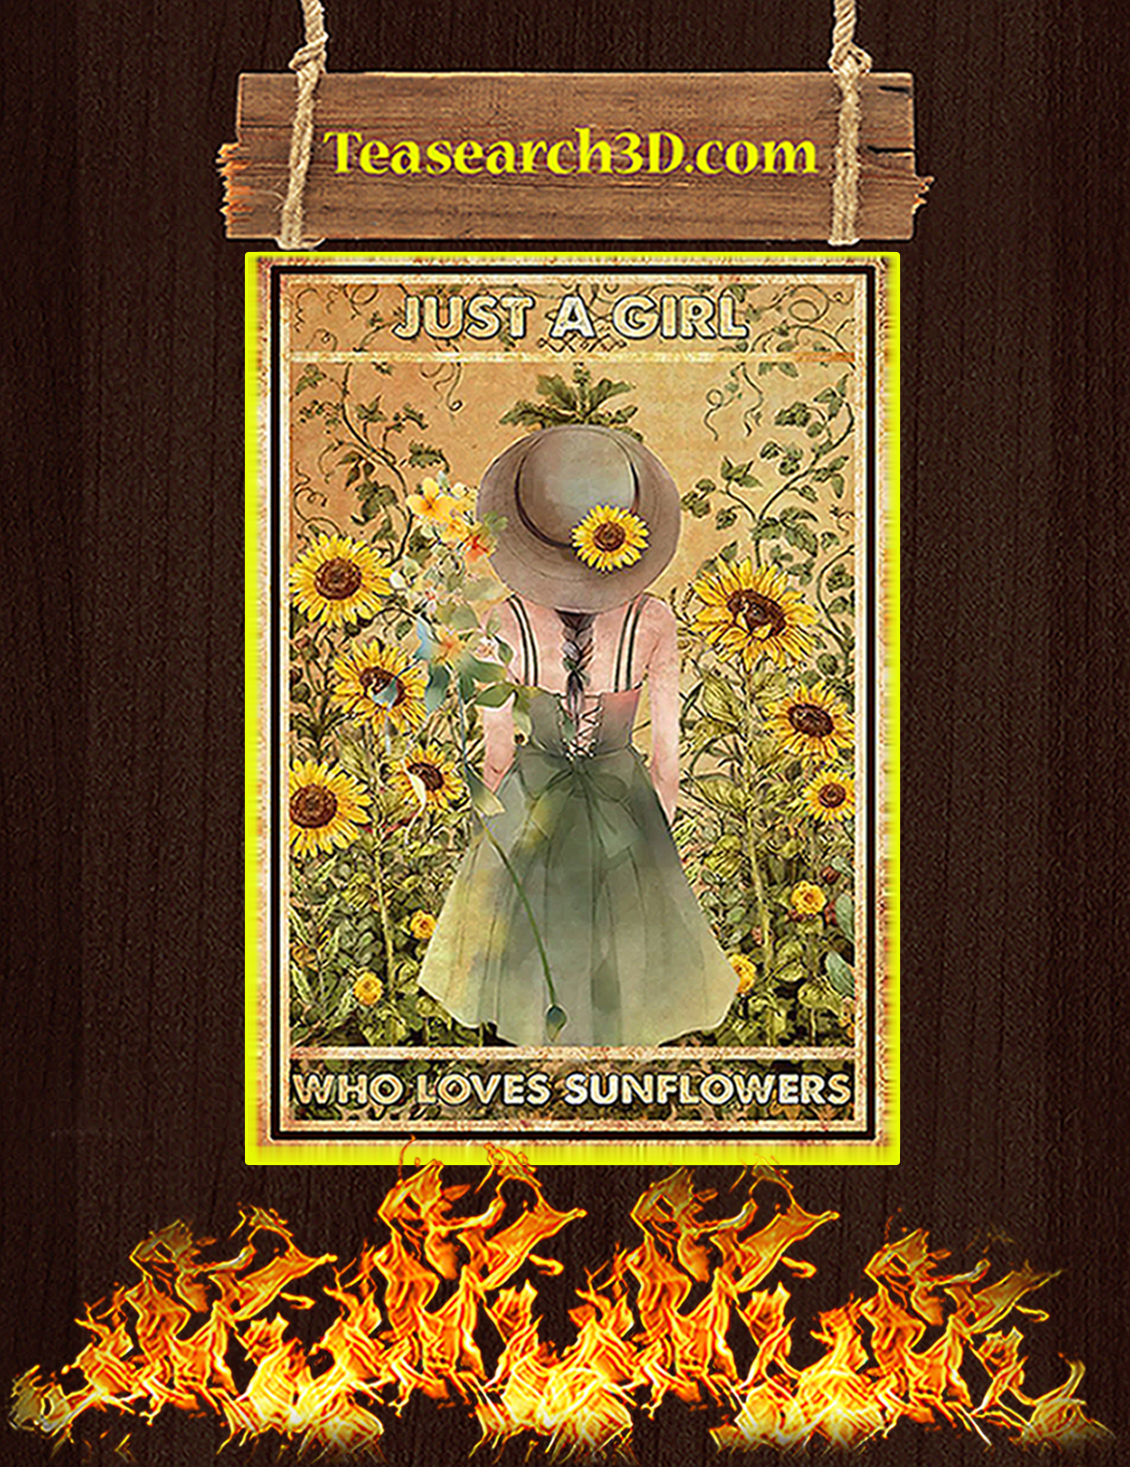 Just a girl who loves sunflowers poster A3